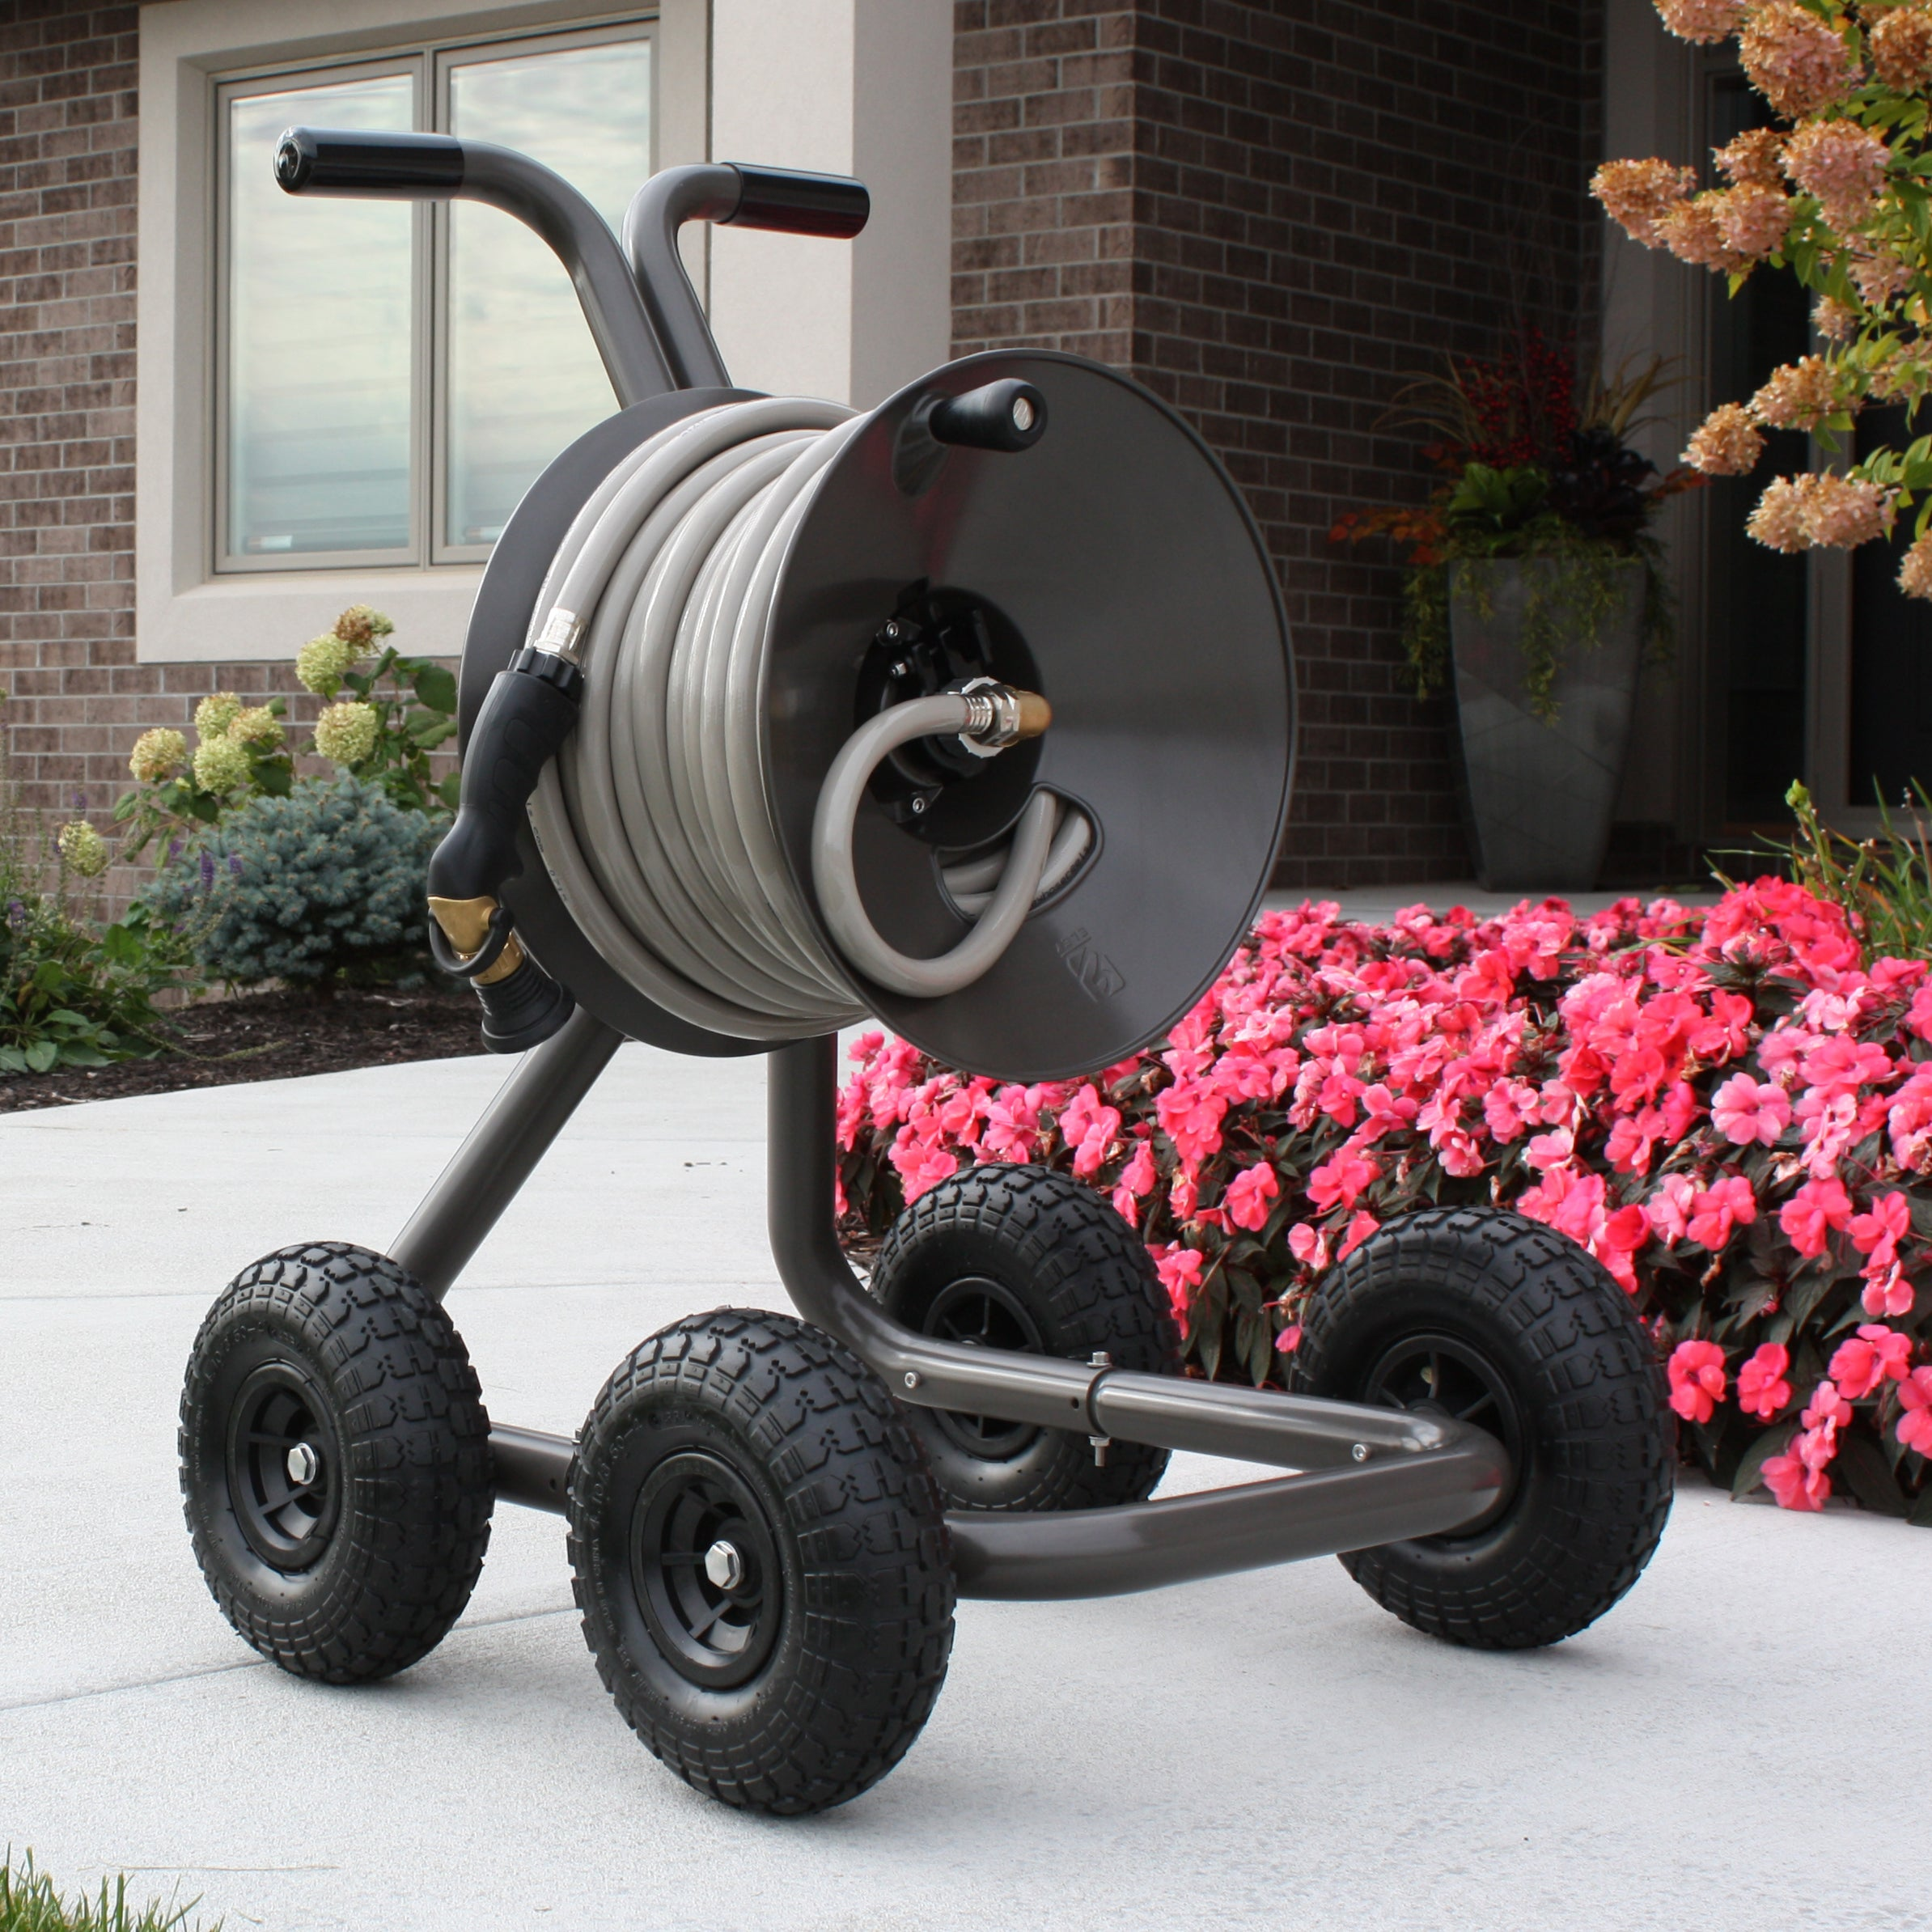 eley model 1043Q 4-wheel garden hose reel wagon